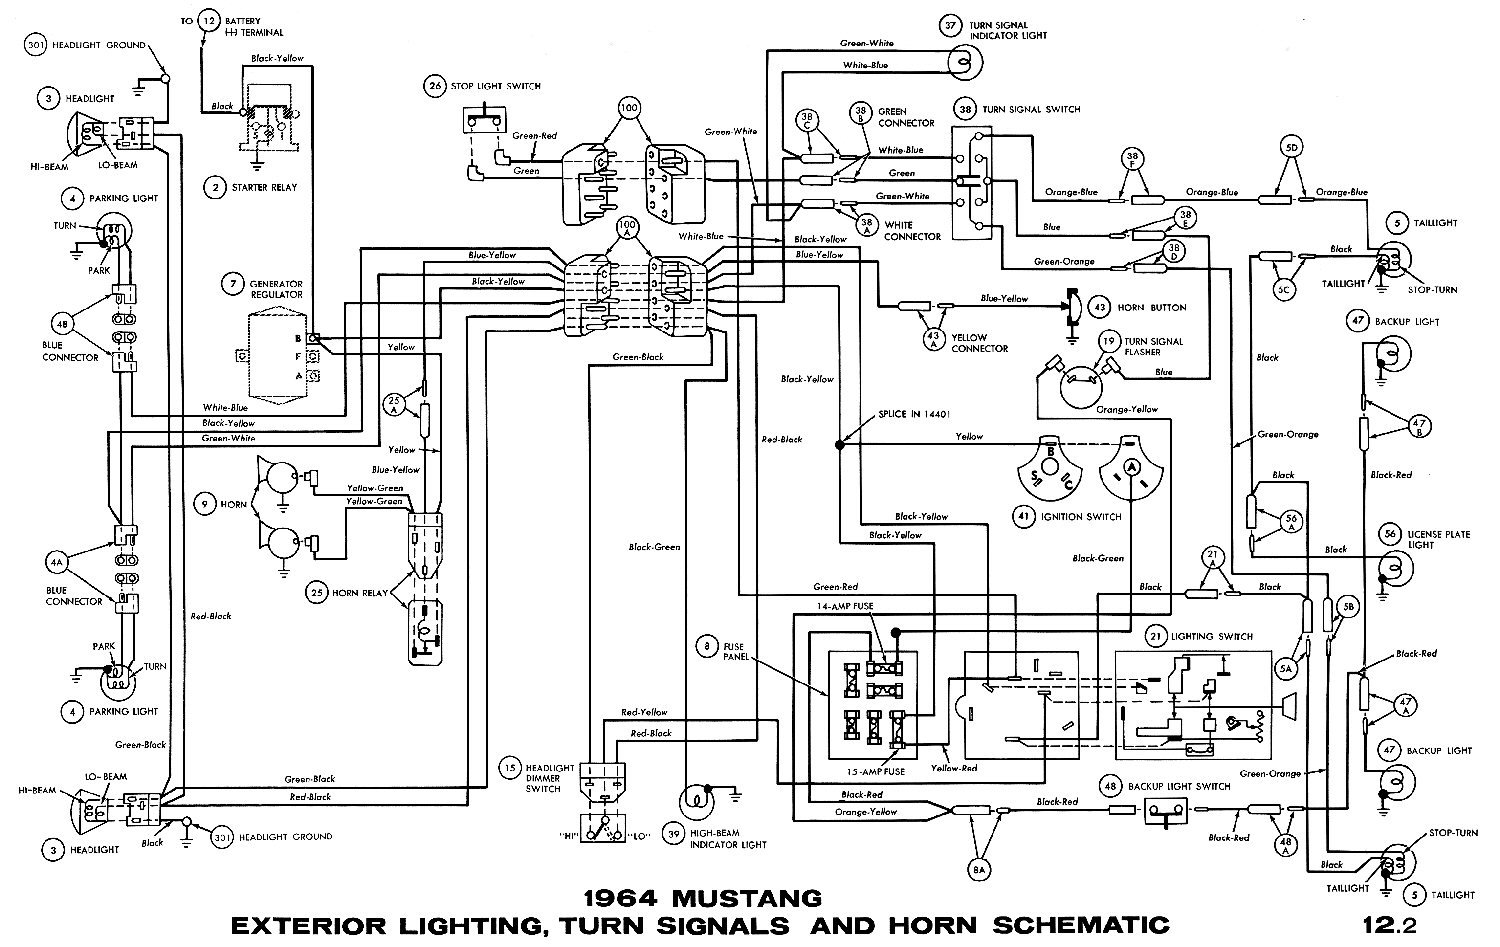 67 Mustang Wiring Diagram Exterior: 67 Camaro Alternator Wiring Diagram At Nayabfun.com